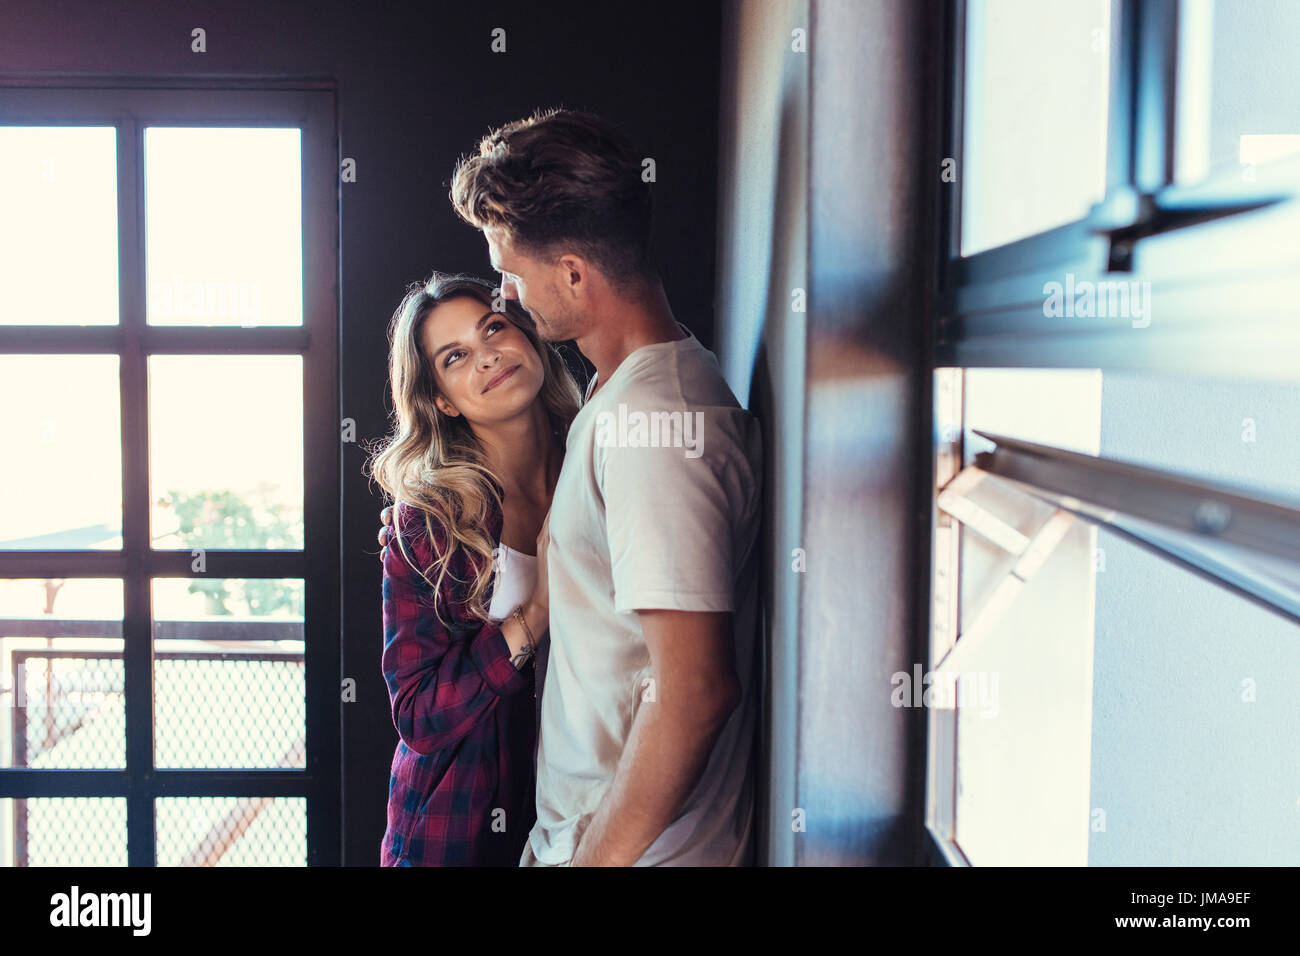 Portrait of romantic young couple looking at each other. Man and woman in love standing together indoors. - Stock Image